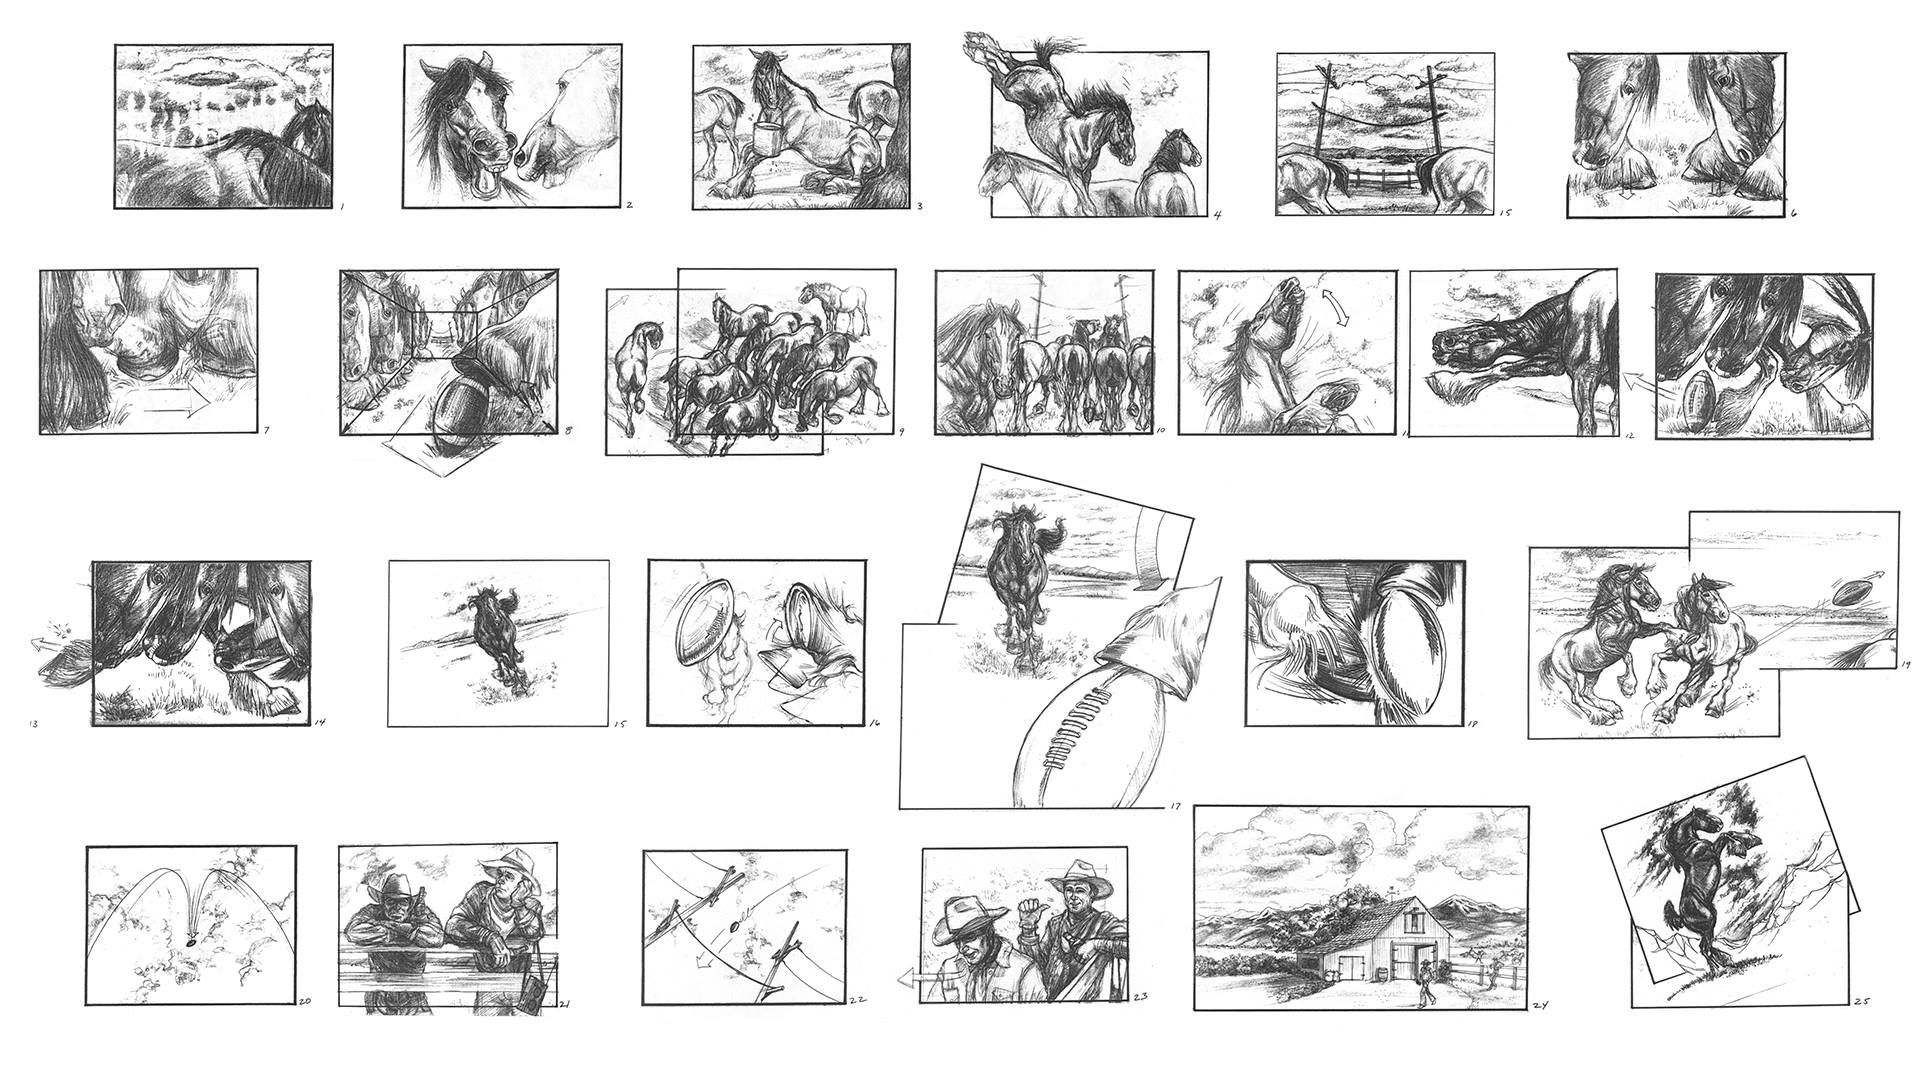 Superbowl Commercial Storyboard By Terryl Whitlatch